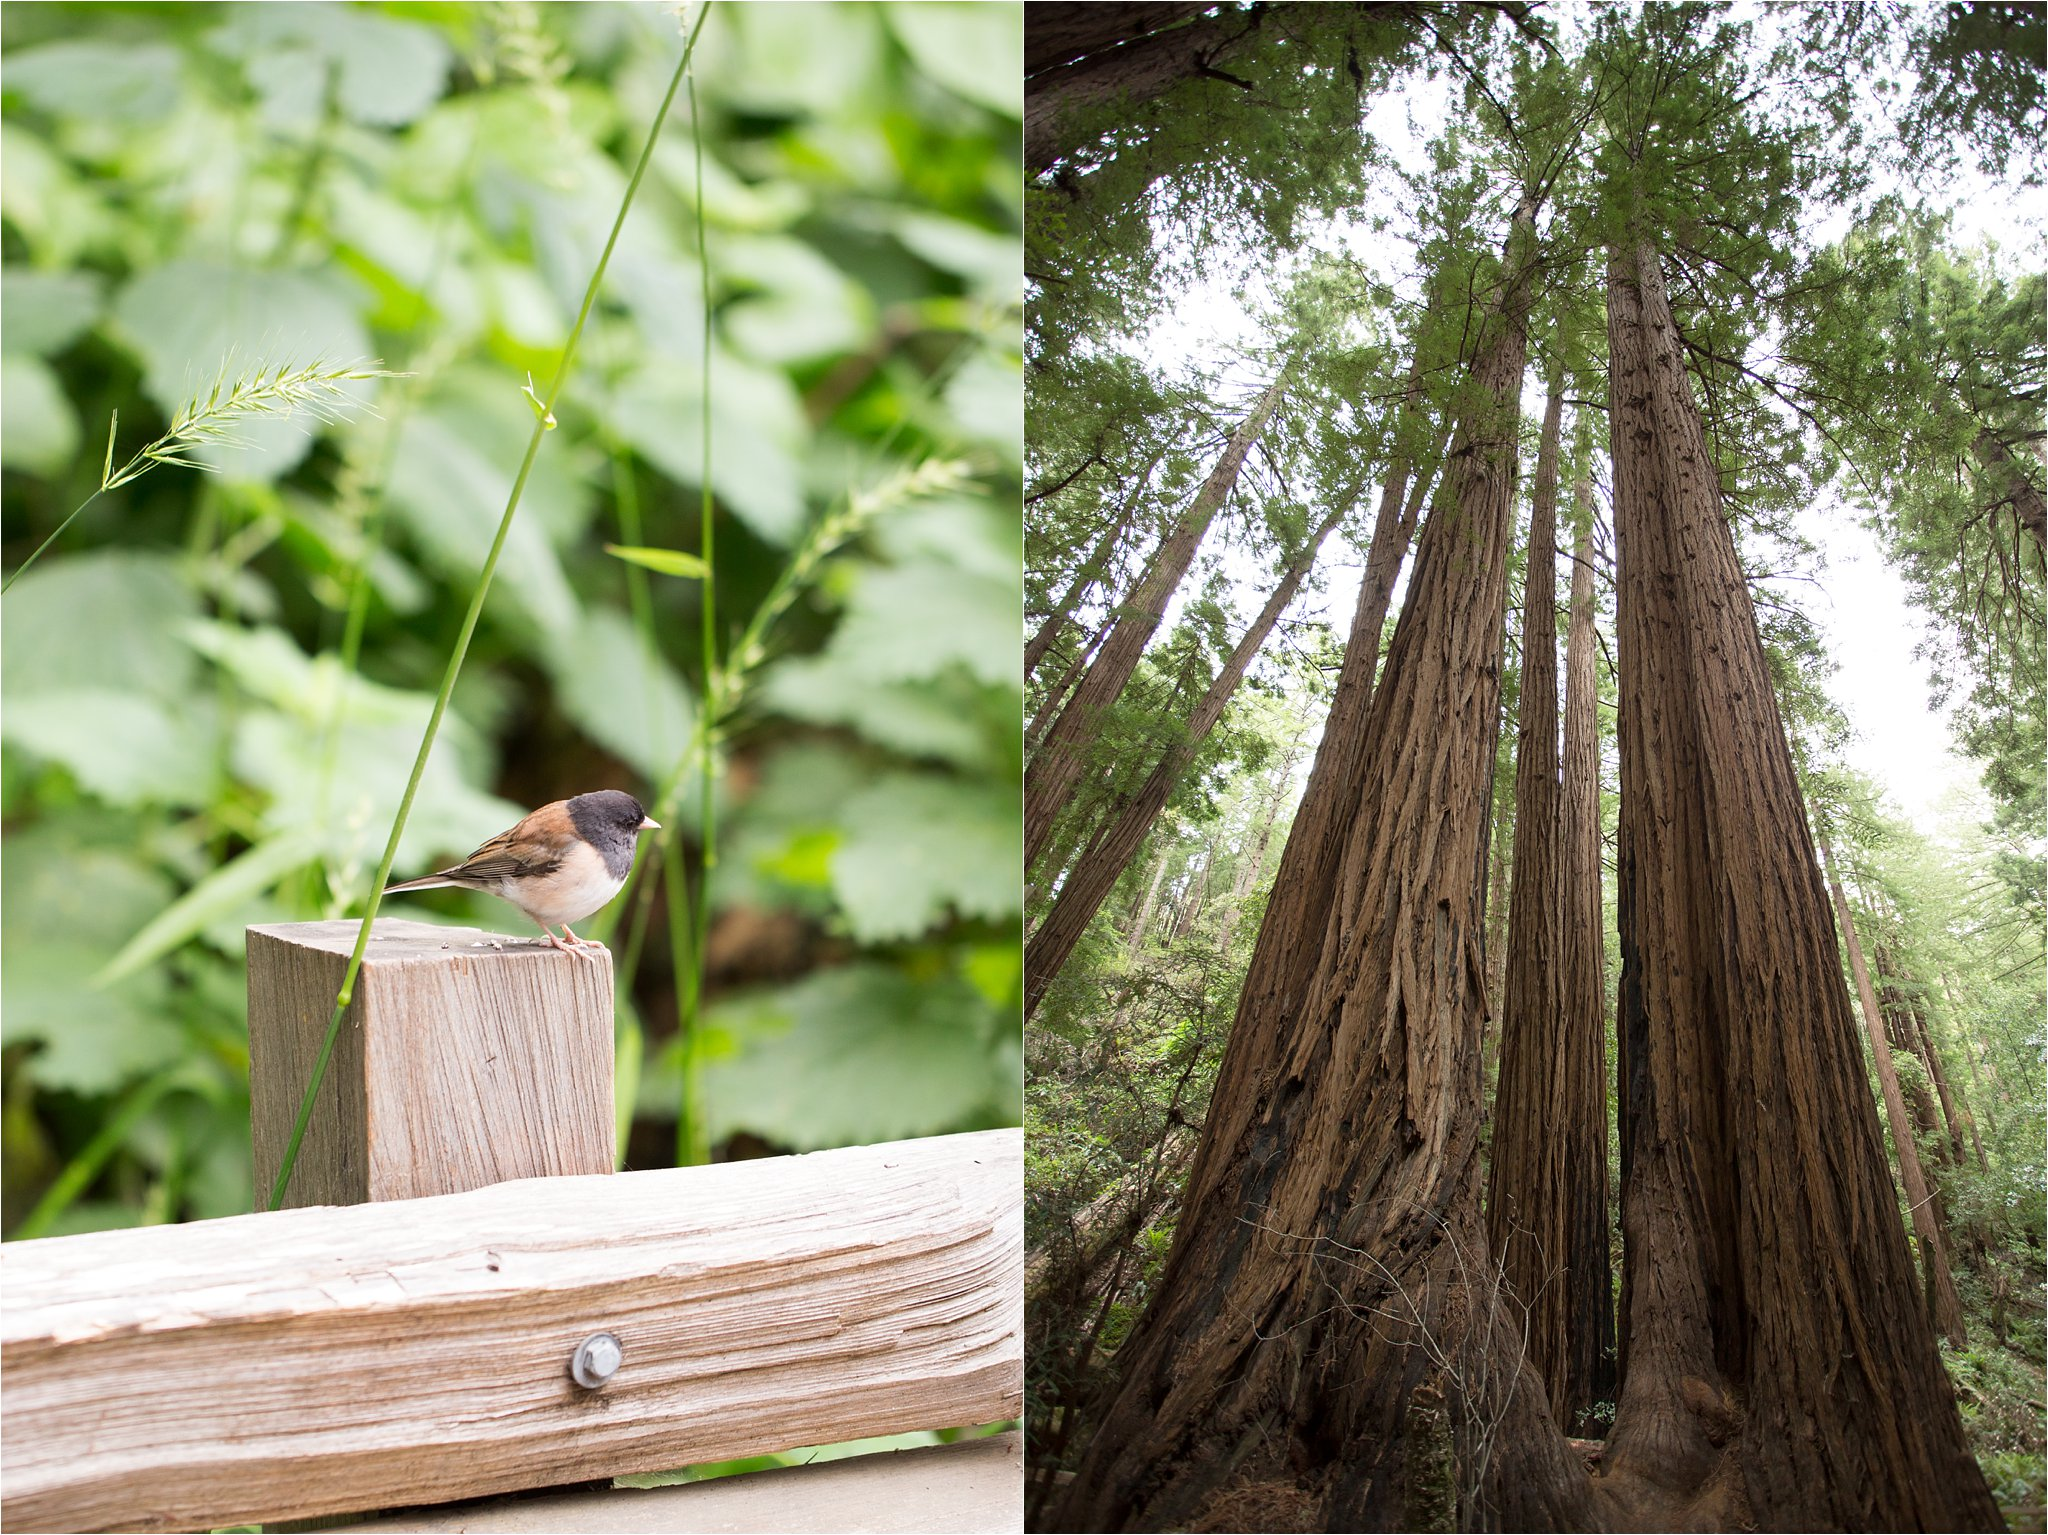 Songbird and Muir Woods